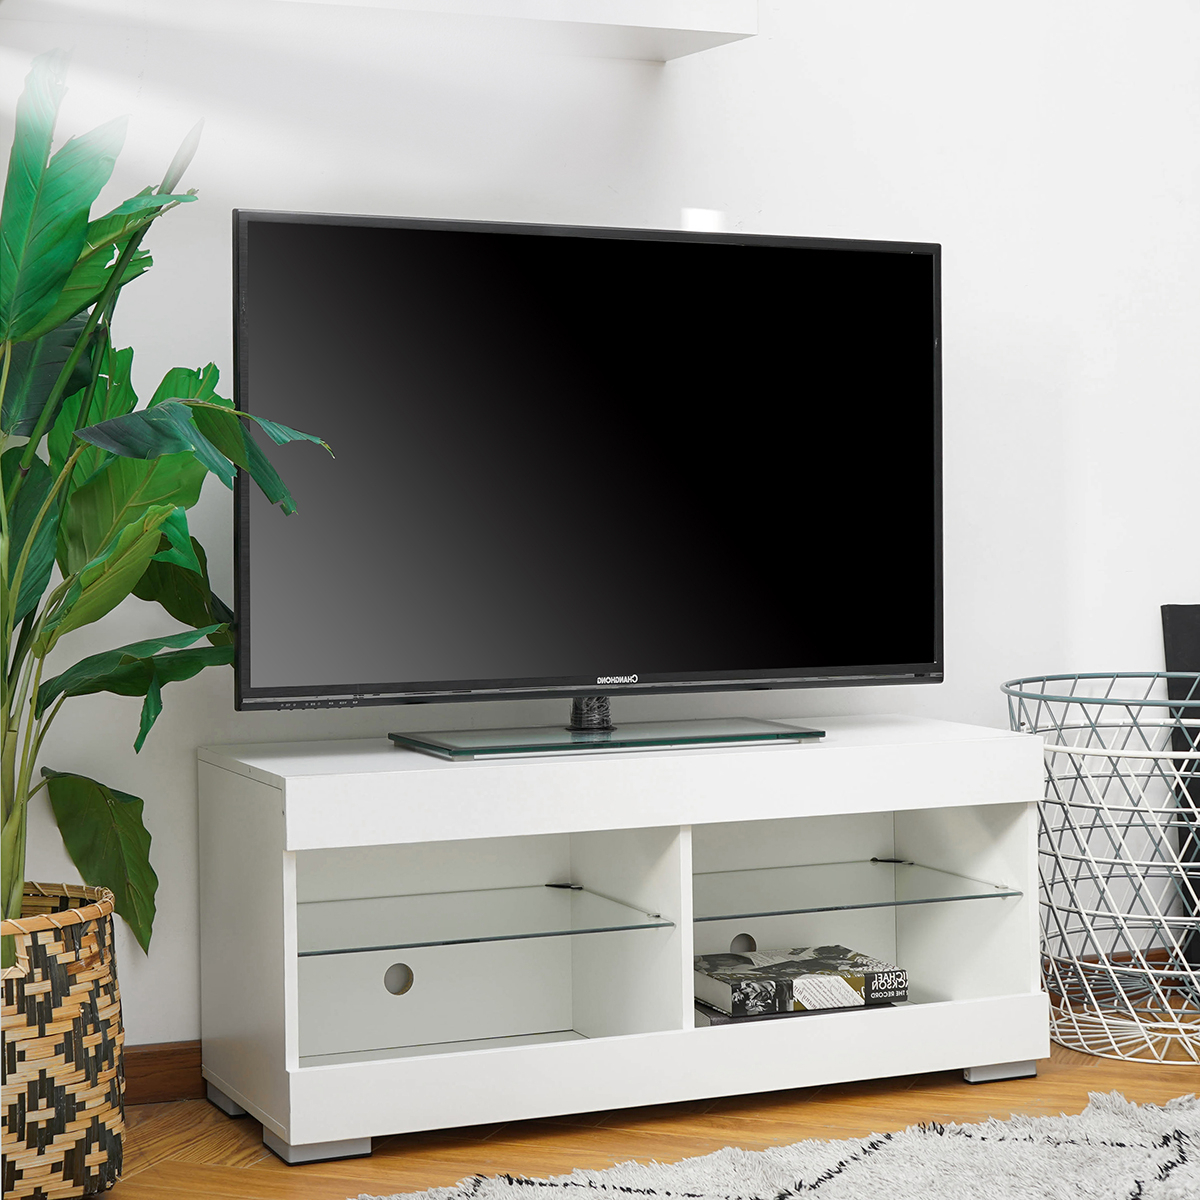 Wood Television Stand Modern Tv Stand Cabinet With Led With Glass Shelves Tv Stands (View 2 of 20)